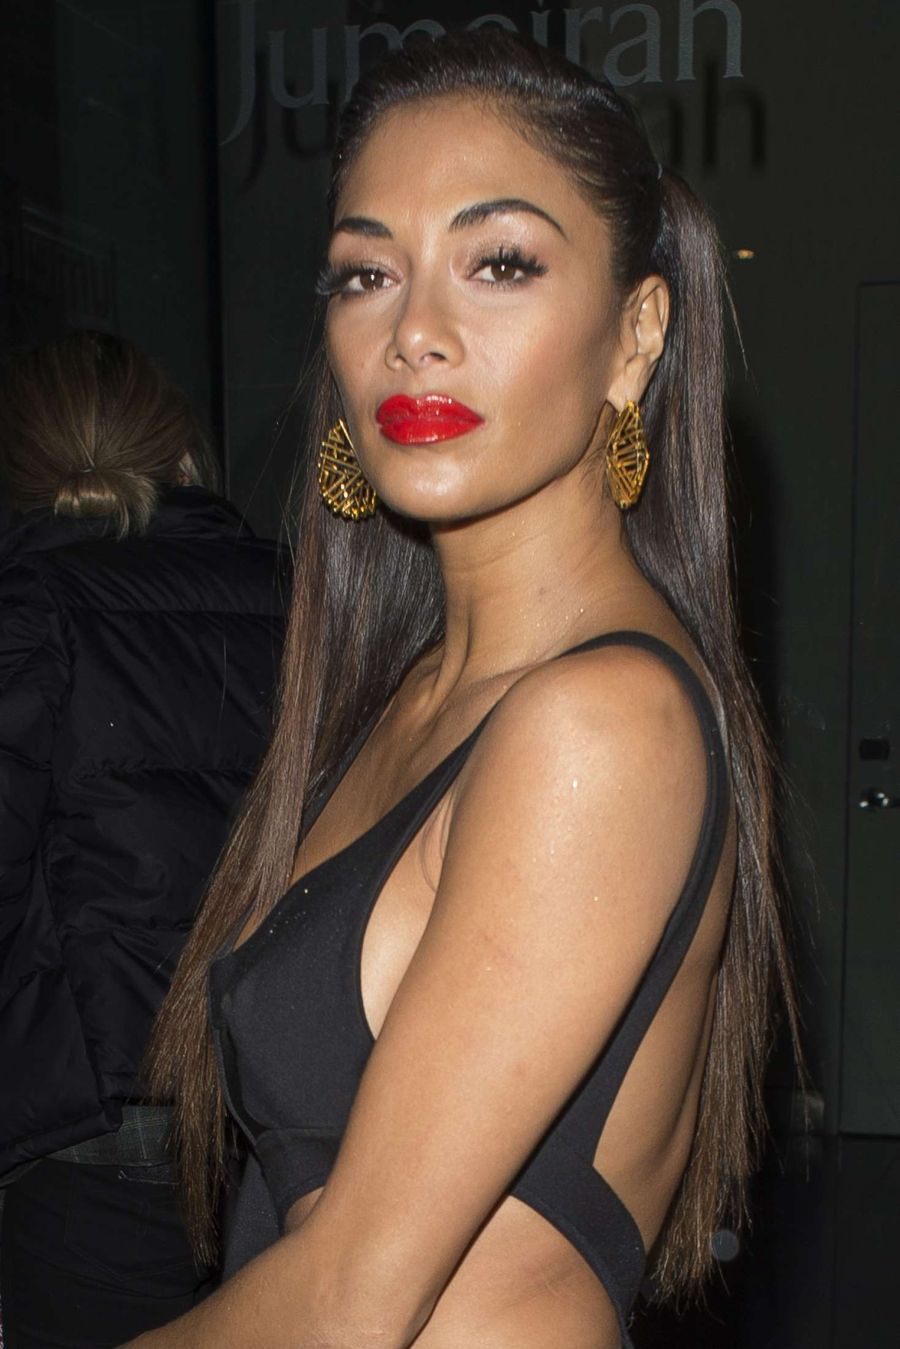 Nicole Scherzinger in Black out in London